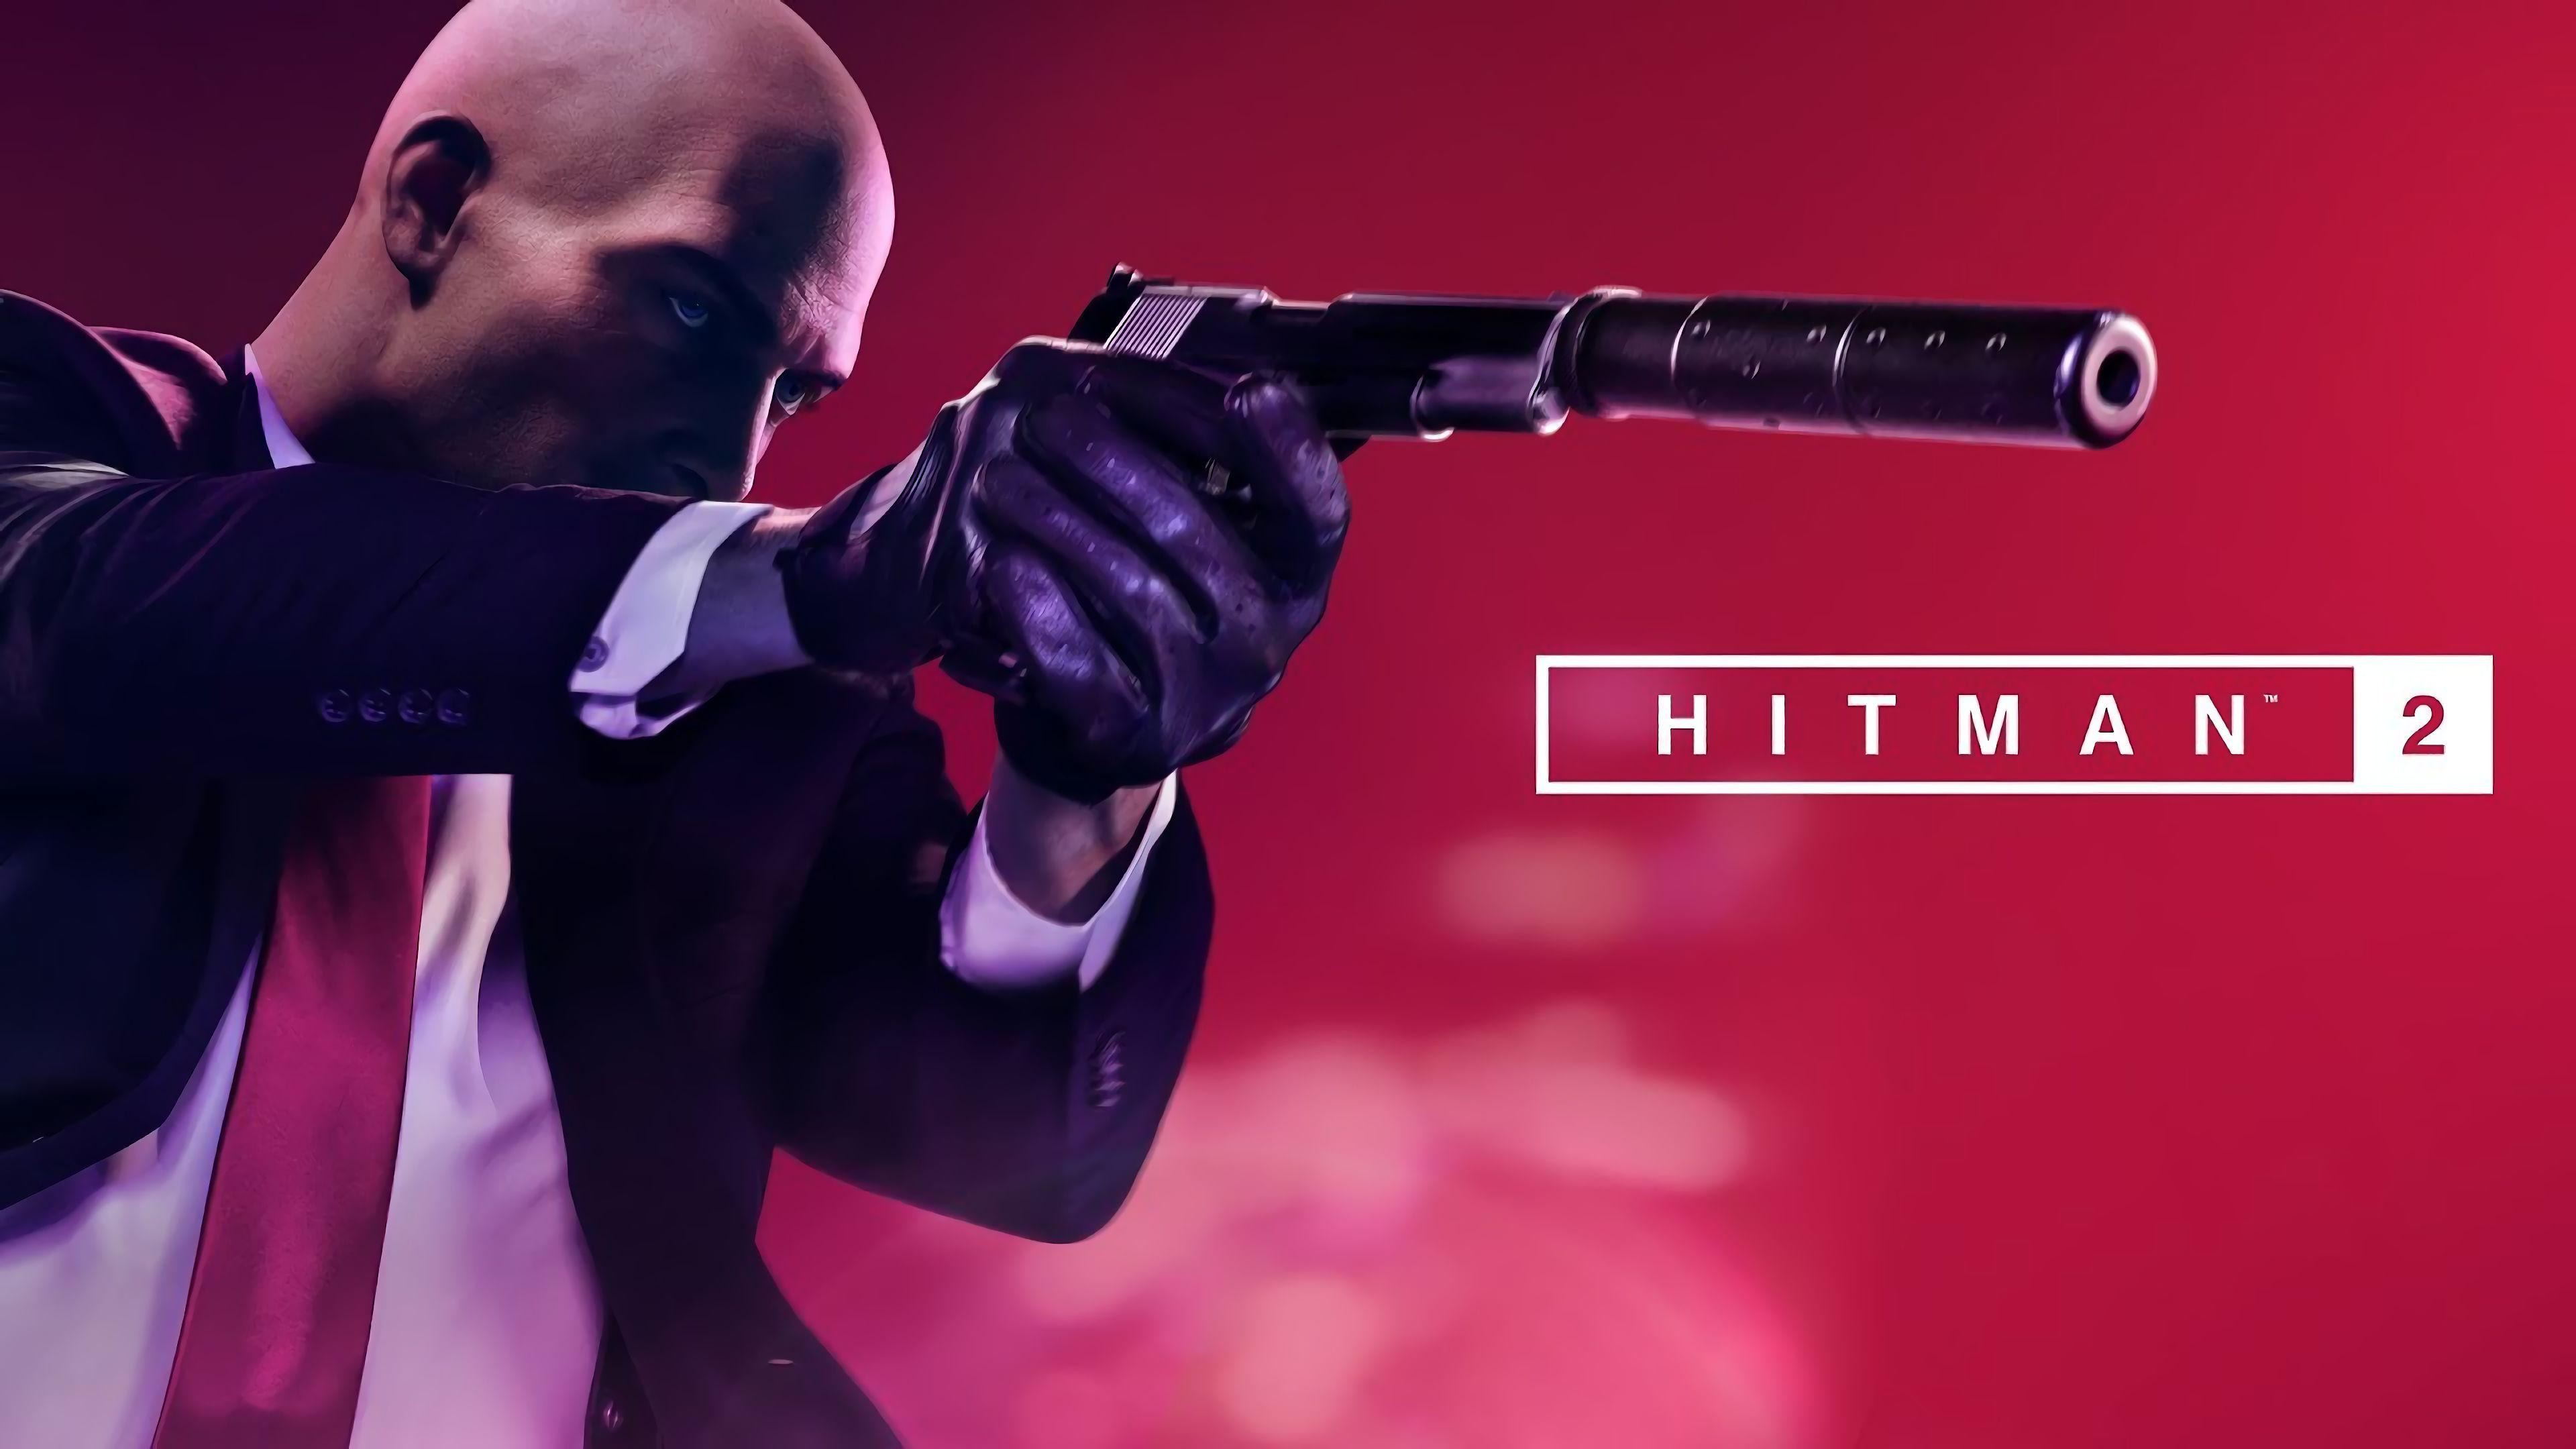 Hitman 2 Wallpapers Wallpaper Cave